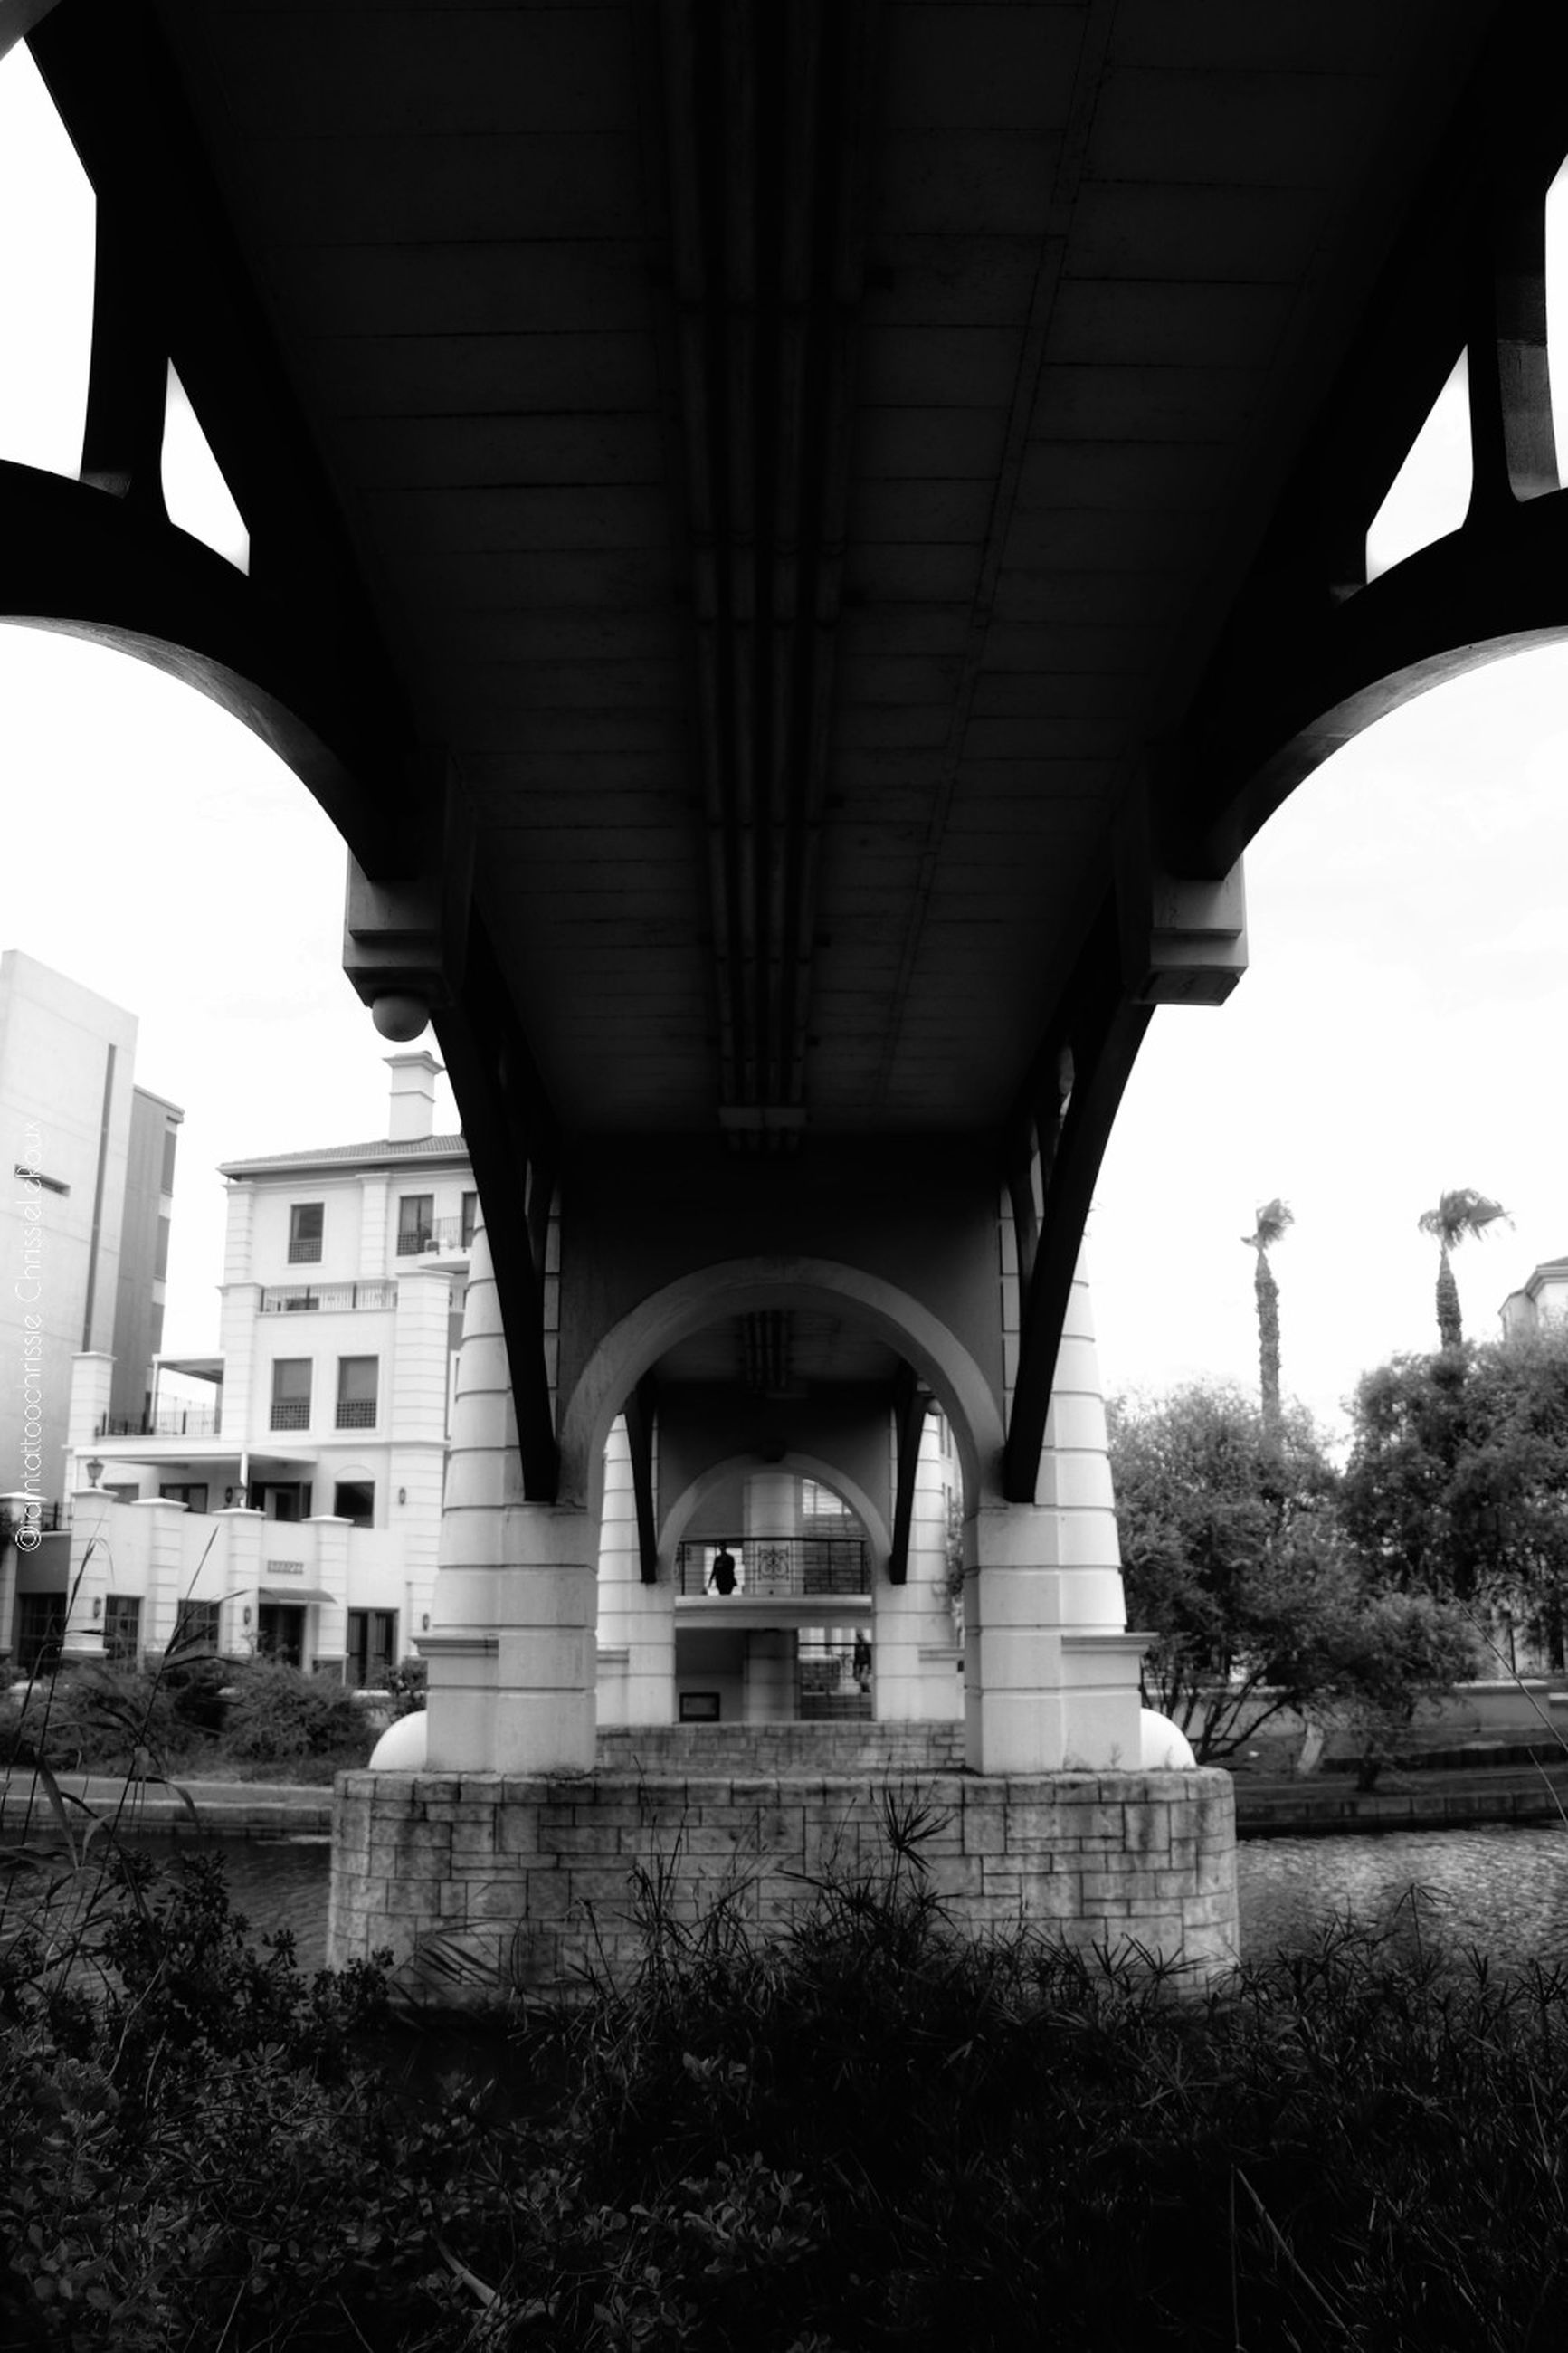 architecture, built structure, bridge, bridge - man made structure, connection, transportation, building exterior, day, plant, no people, architectural column, low angle view, city, nature, tree, arch, outdoors, building, water, arch bridge, underneath